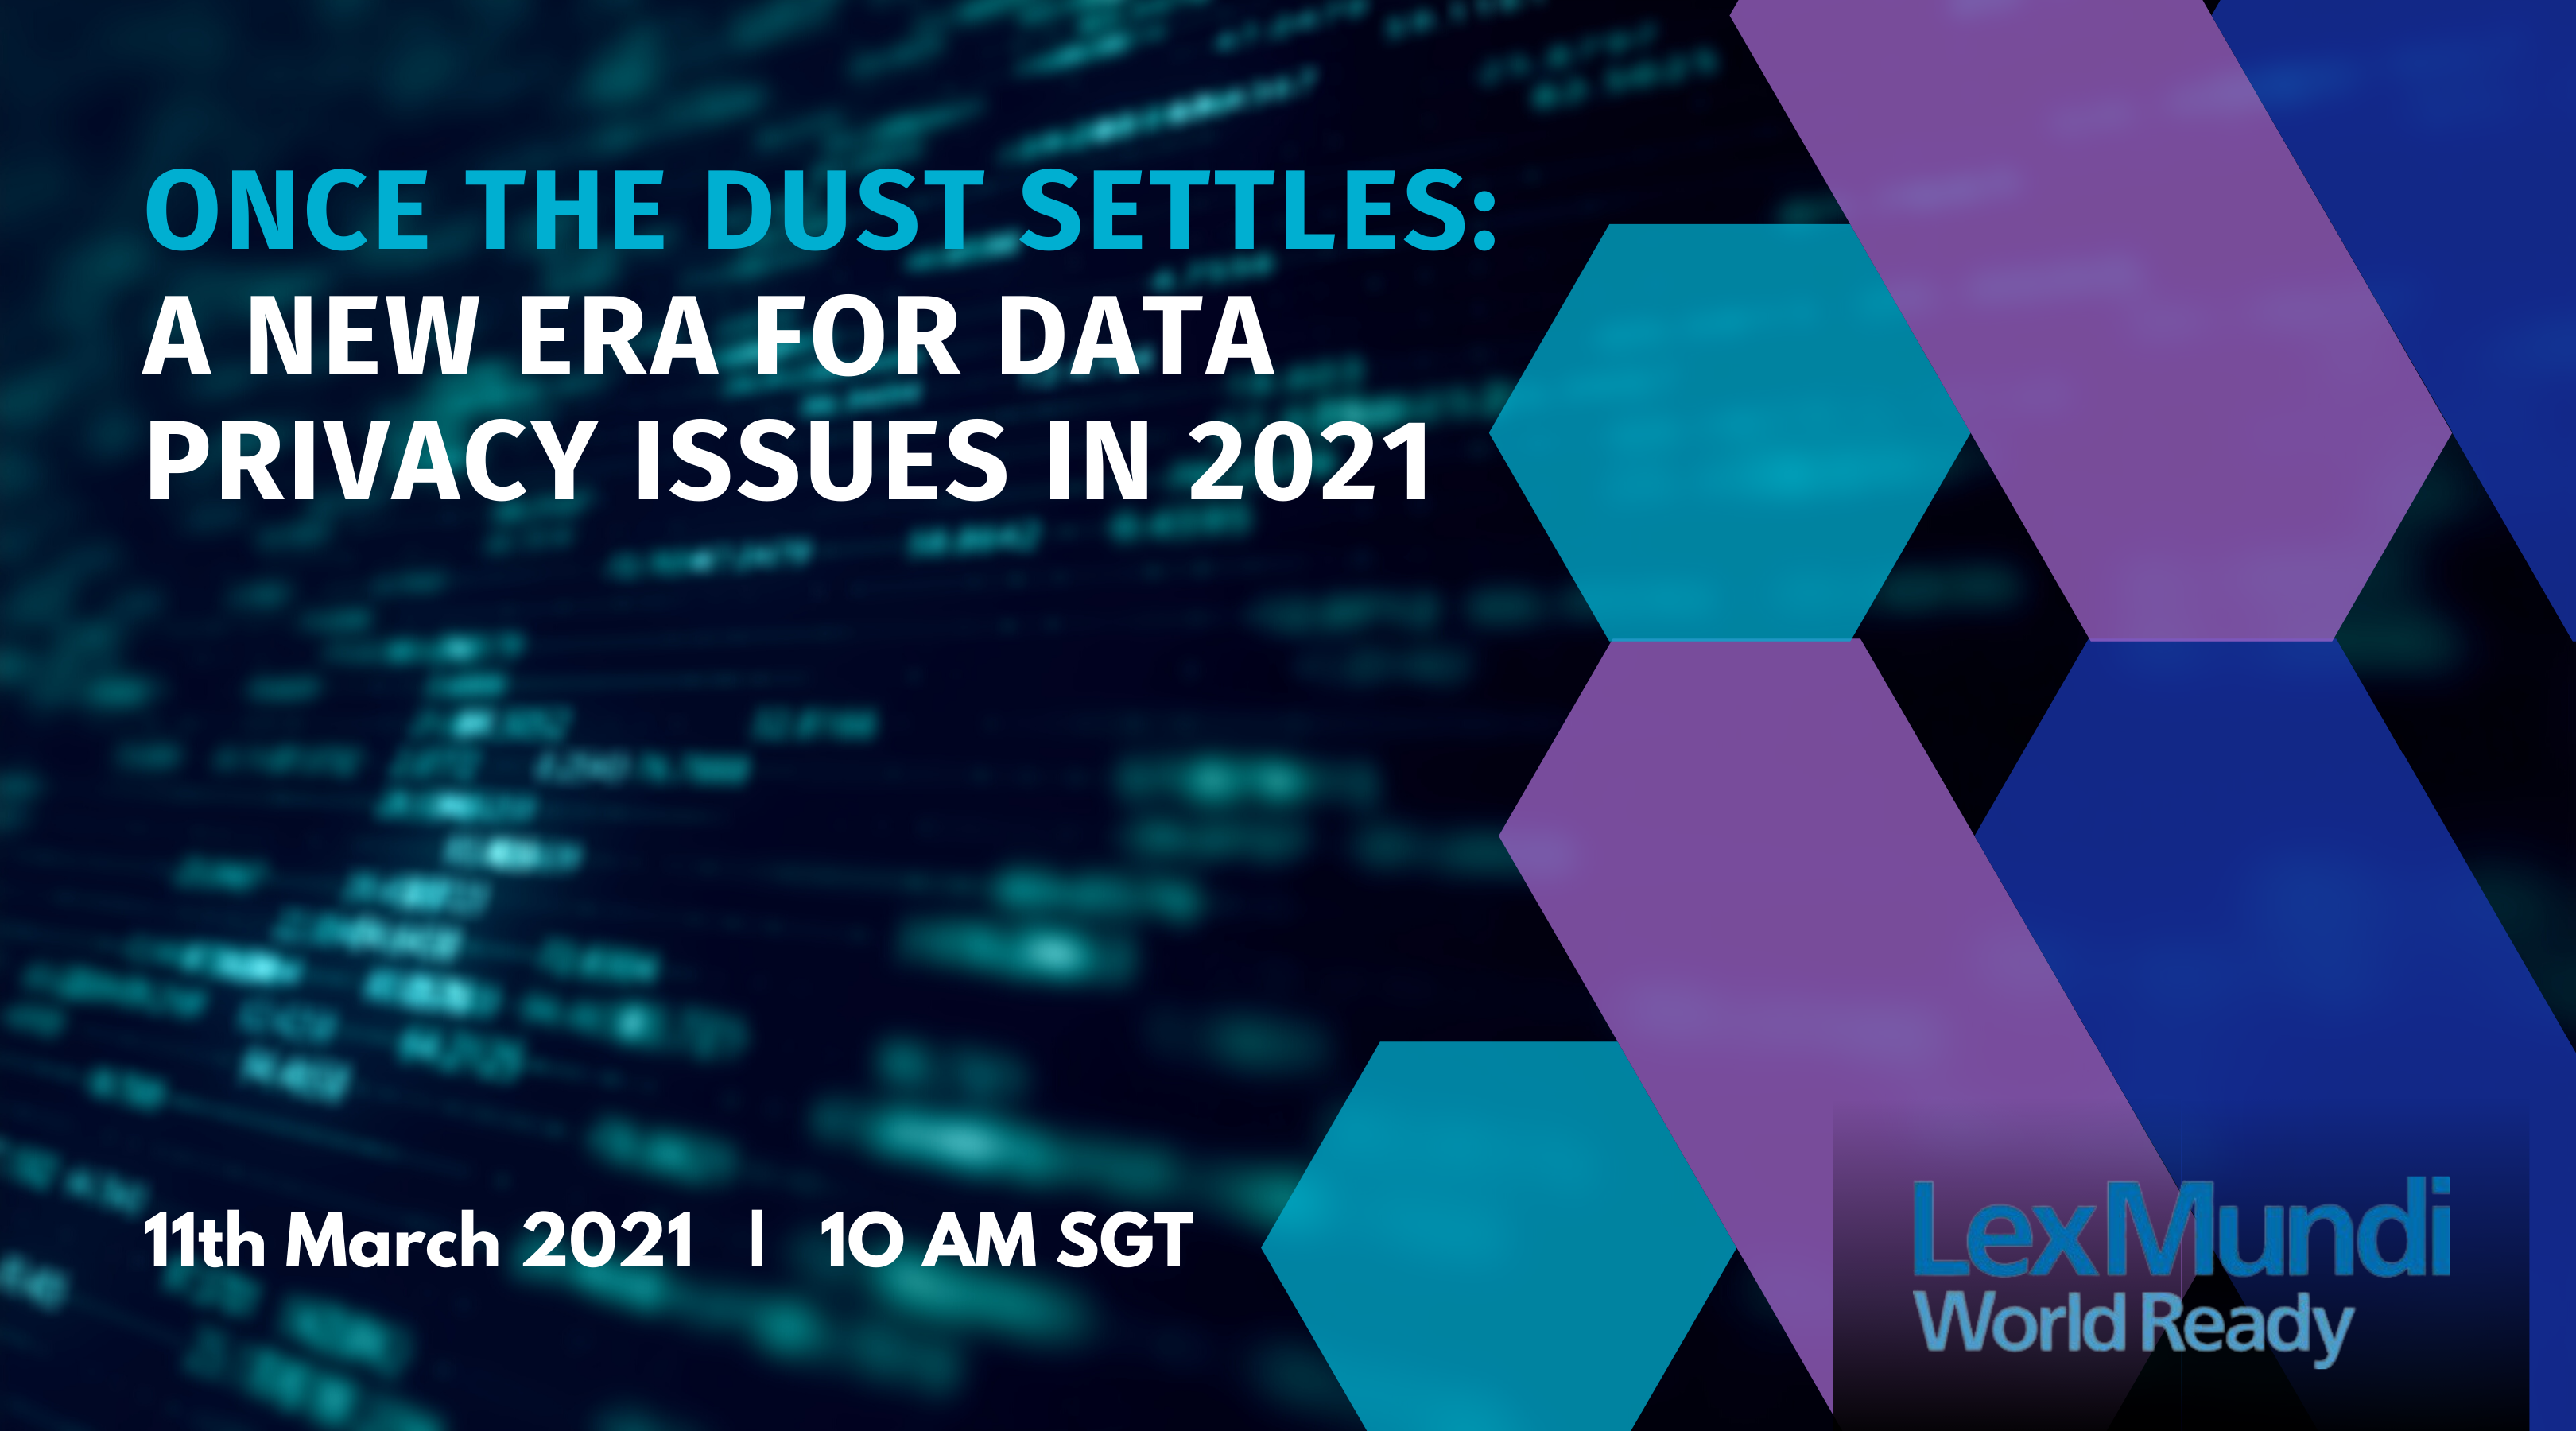 Once the dust settles: A New Era for Data Privacy Issues in 2021